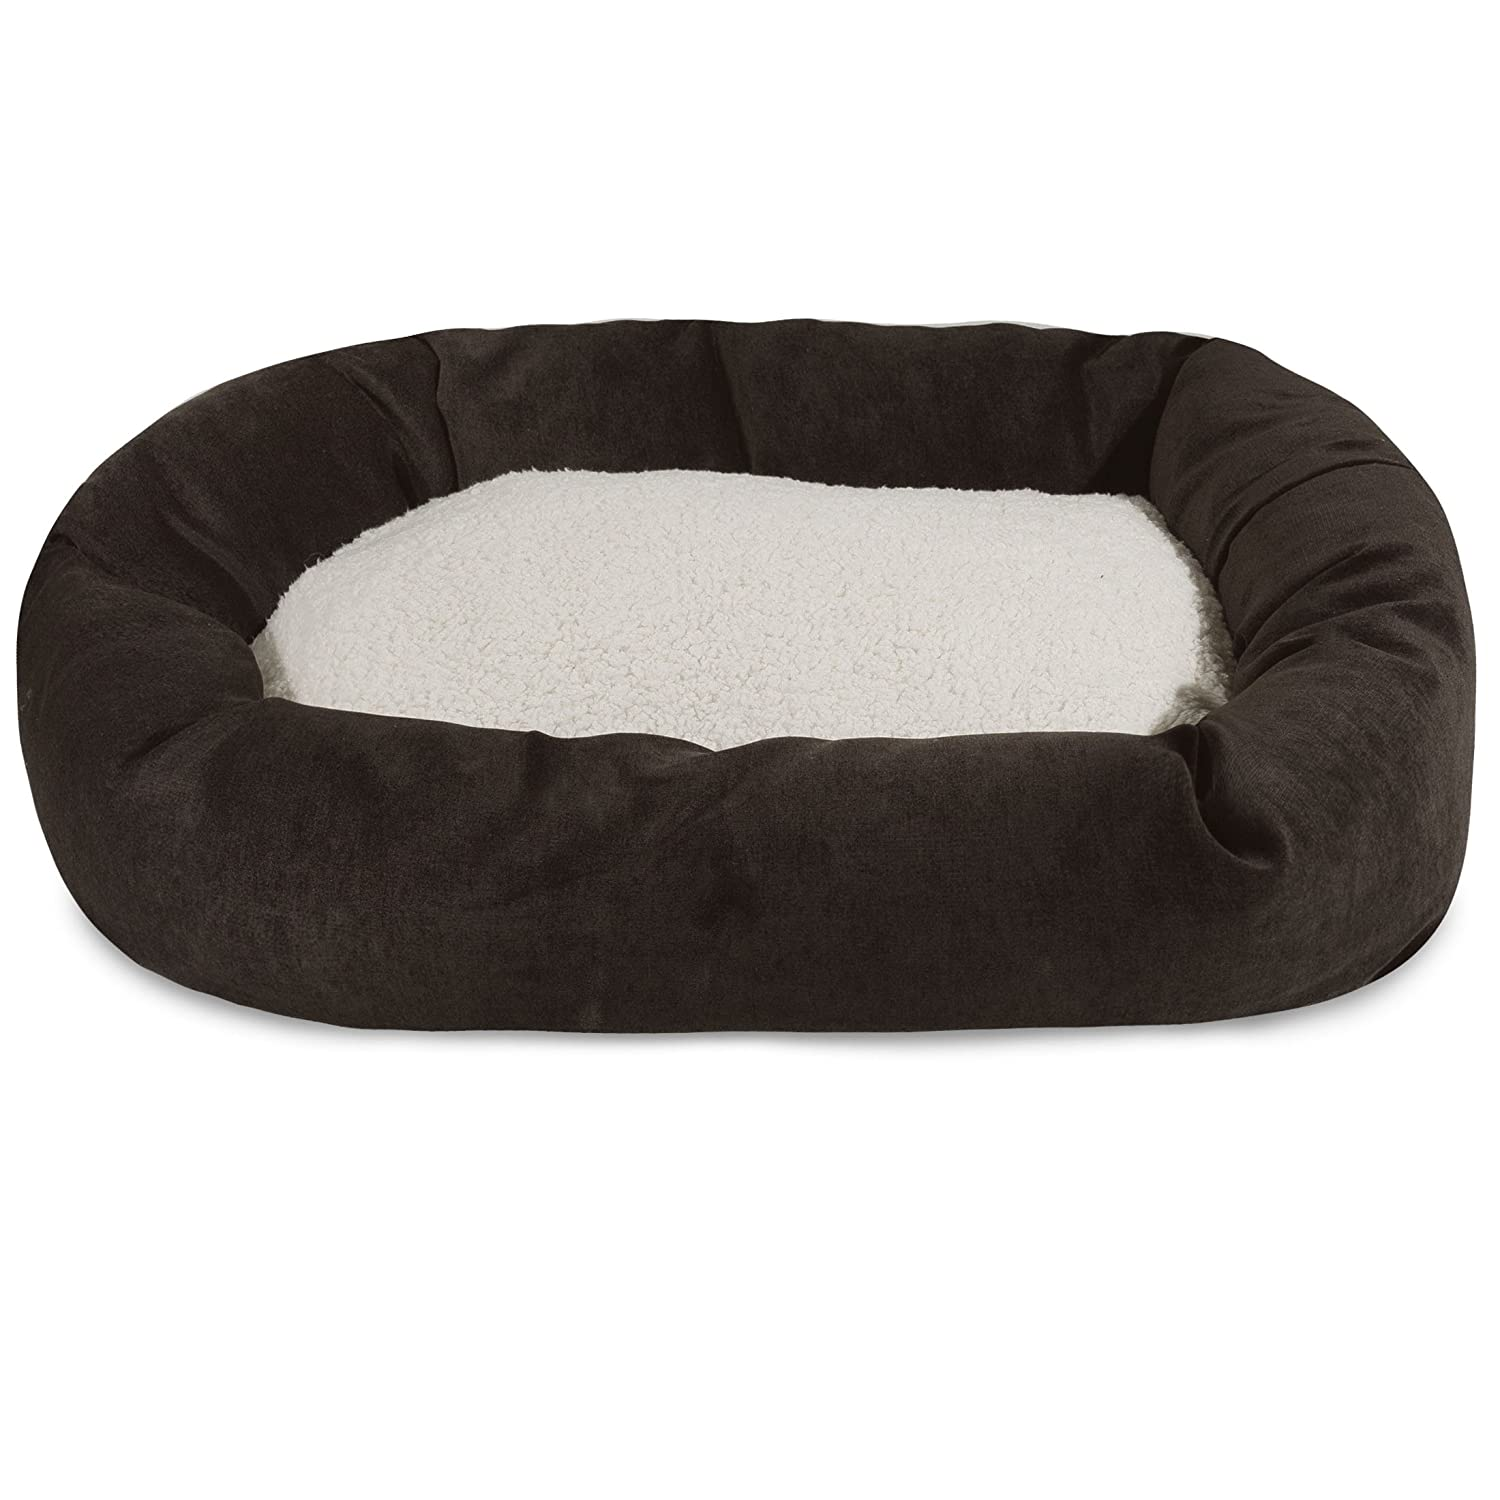 Majestic Pet 24 inch Storm Villa Collection Sherpa Bagel Dog Bed